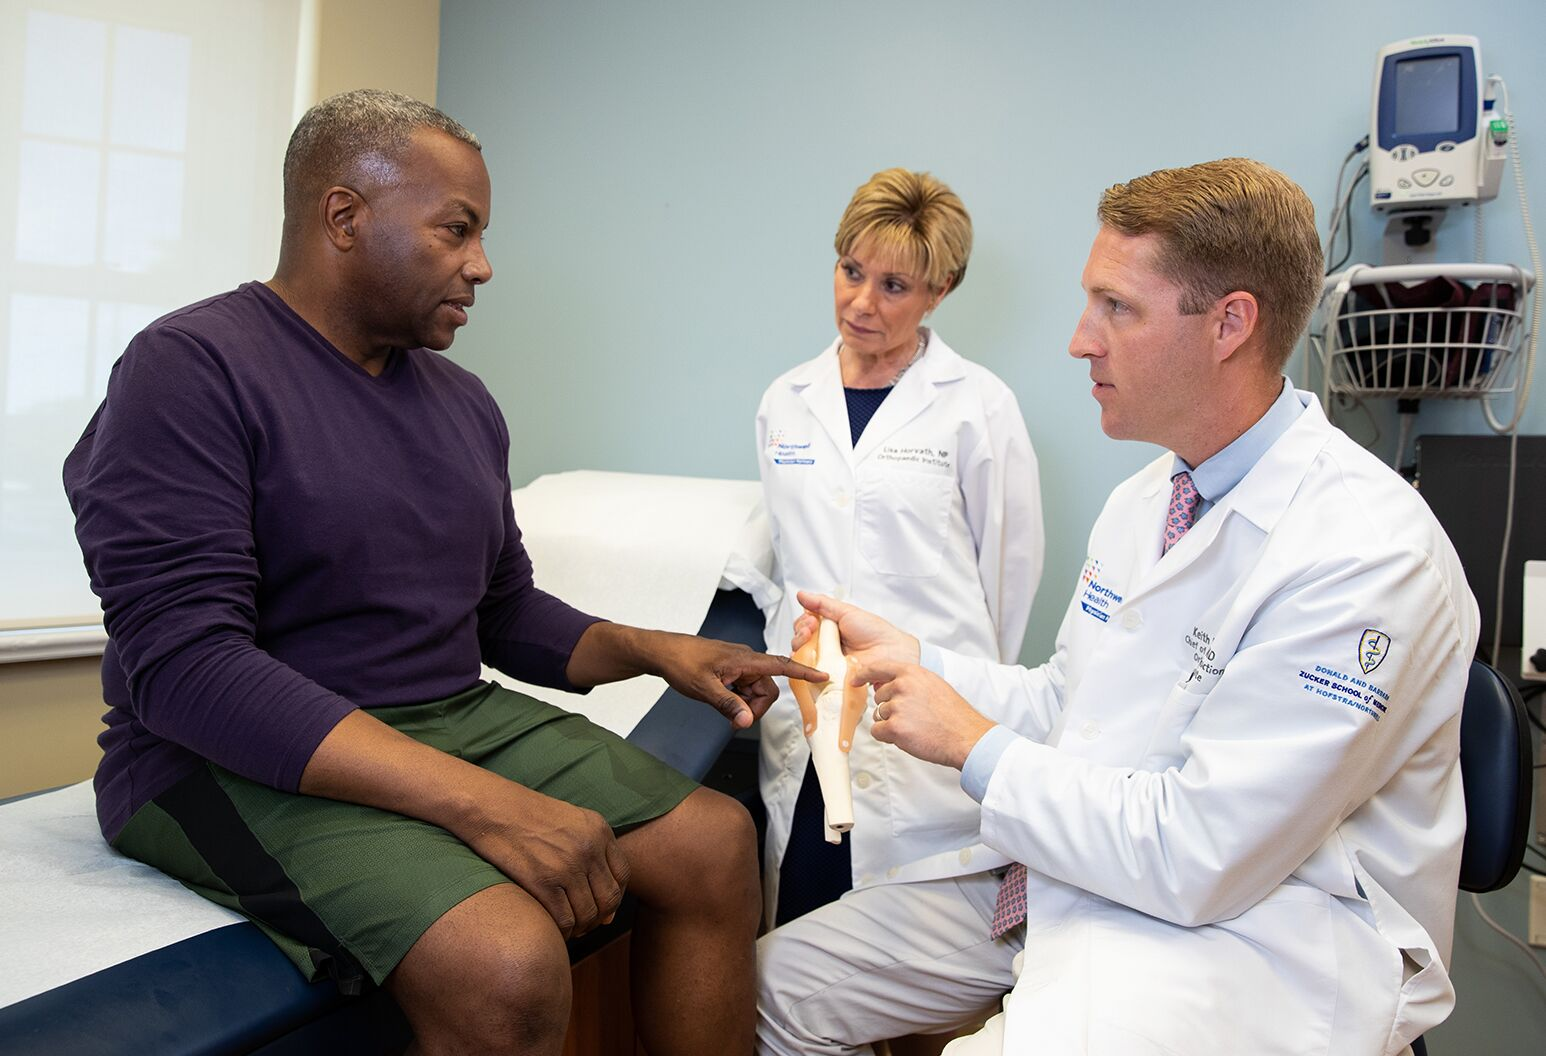 Doctor is showing a model of a knee to a middle aged male patient